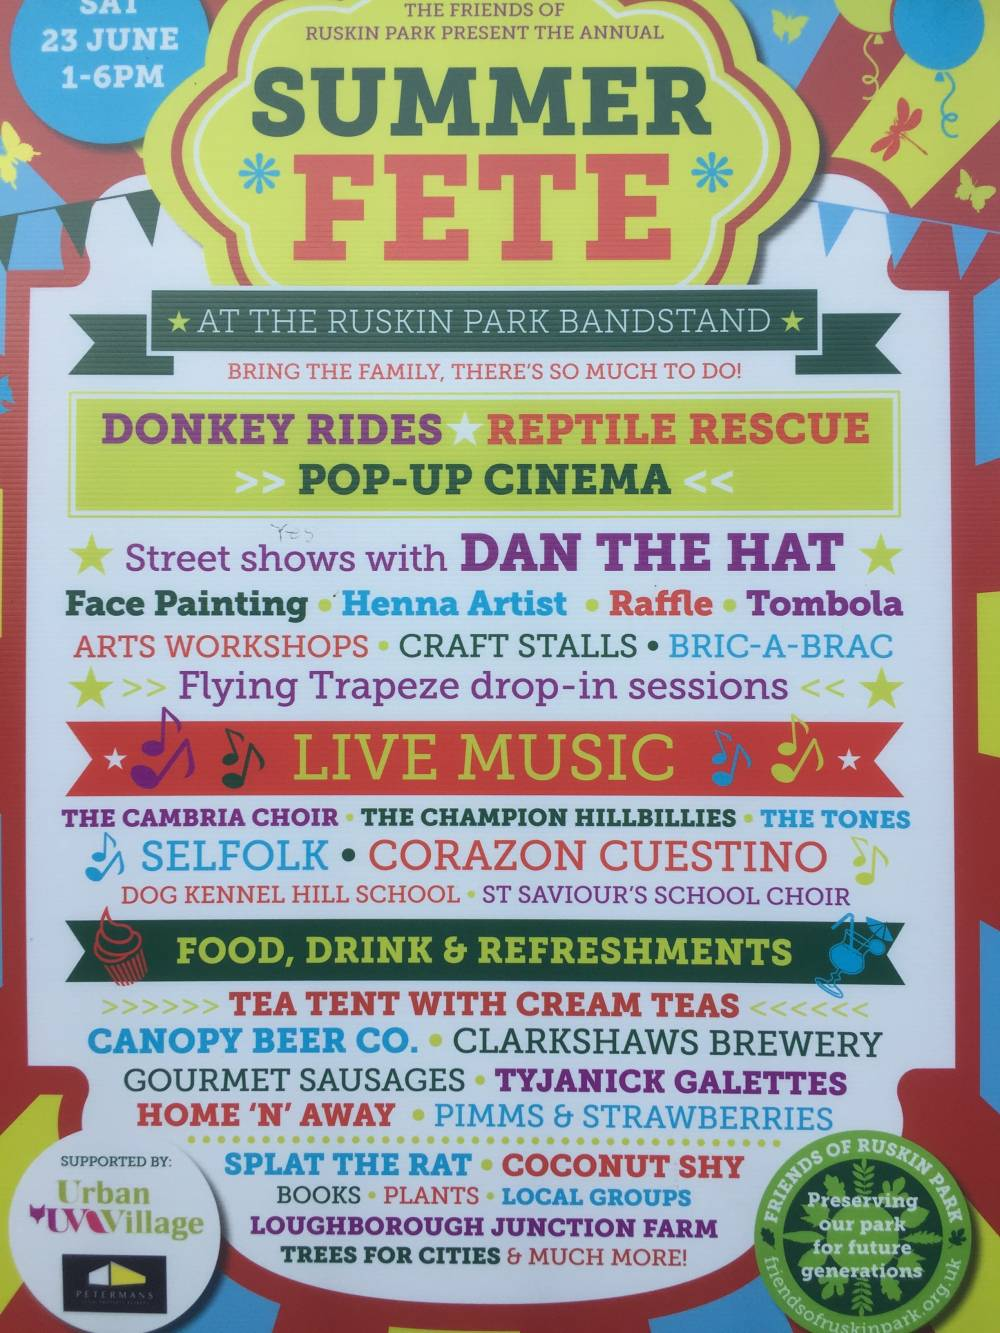 UVH Blog - EVERYONE IS INVITED TO THE RUSKIN PARK SUMMER FETE 2018